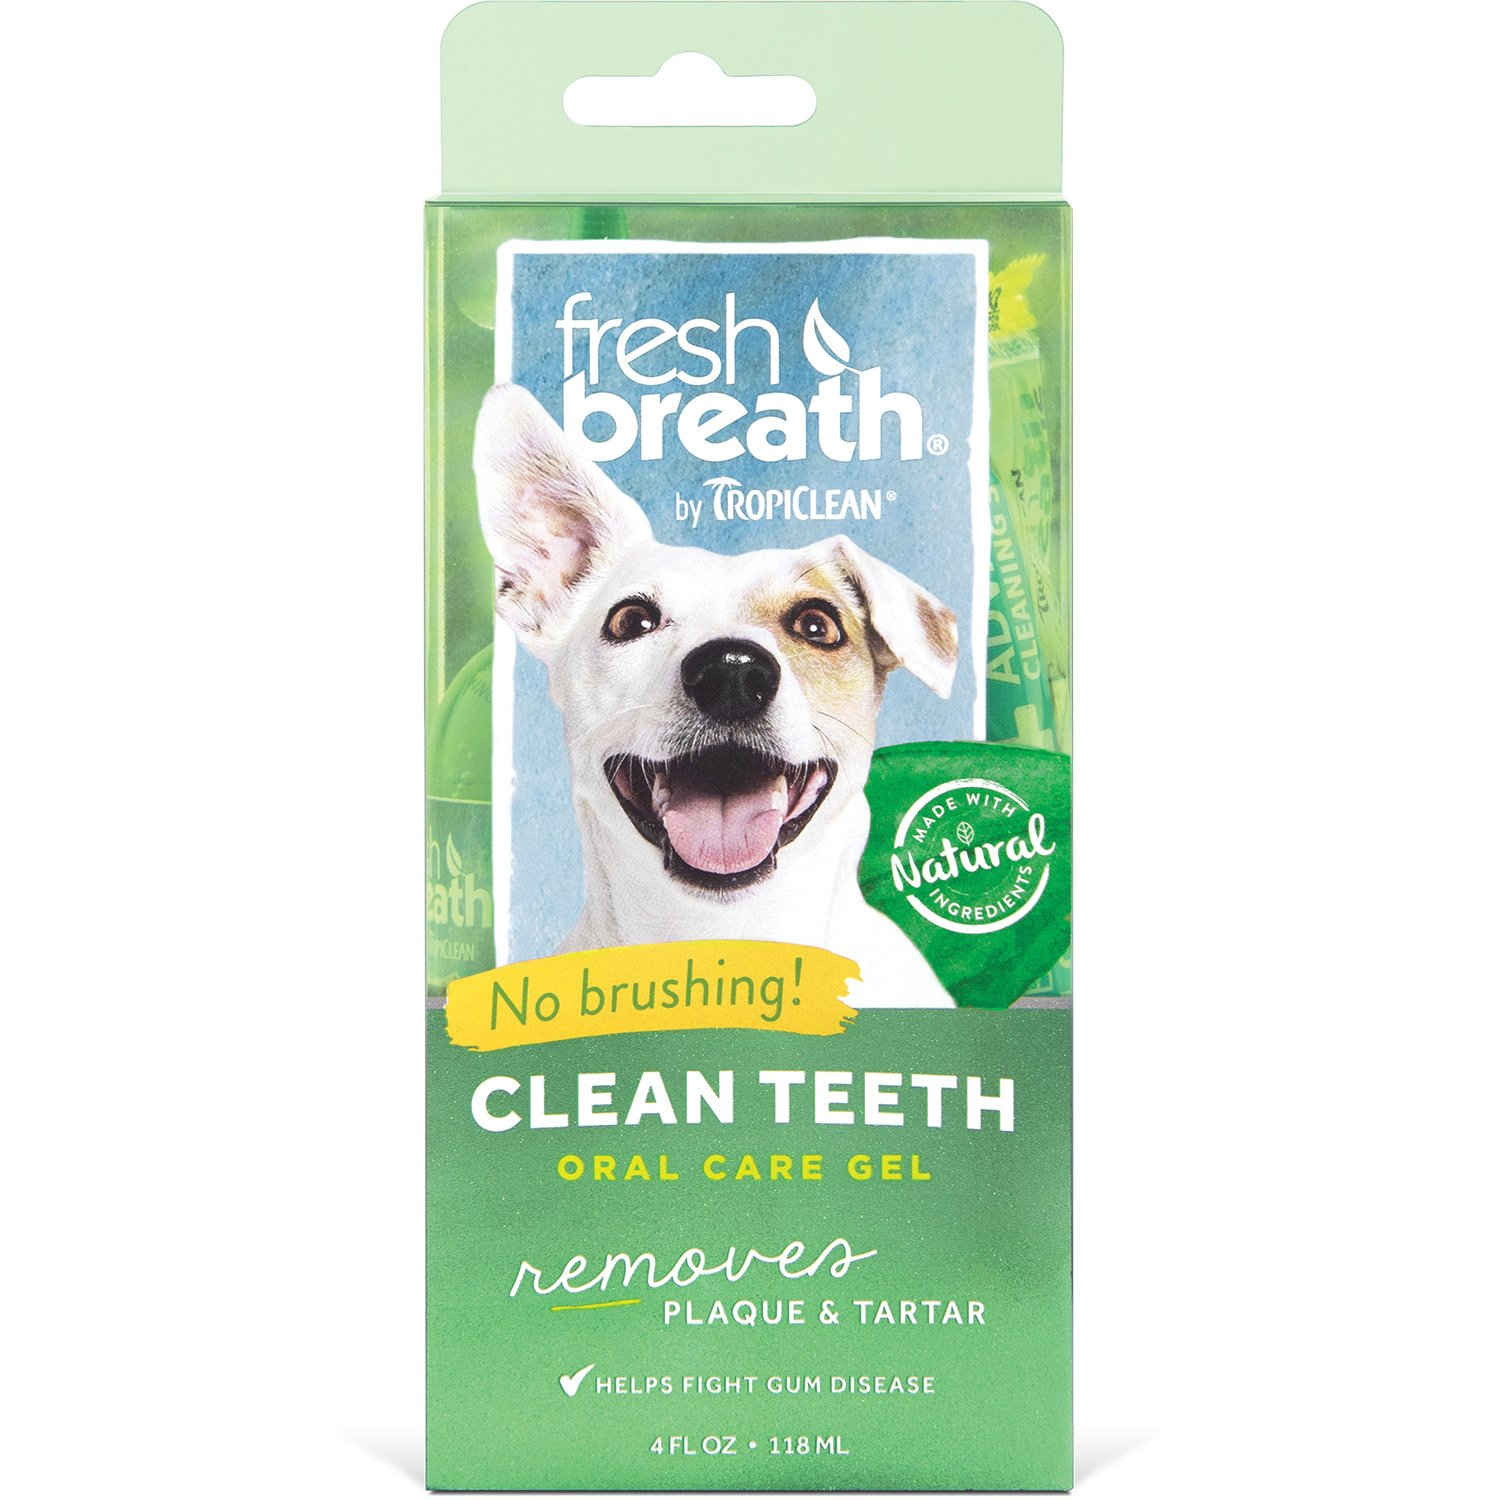 Tropiclean Fresh Breath No Brushing Dental Care Plaque Remover Gel For Dogs, 4 oz, PLUS DENTAL CHEW